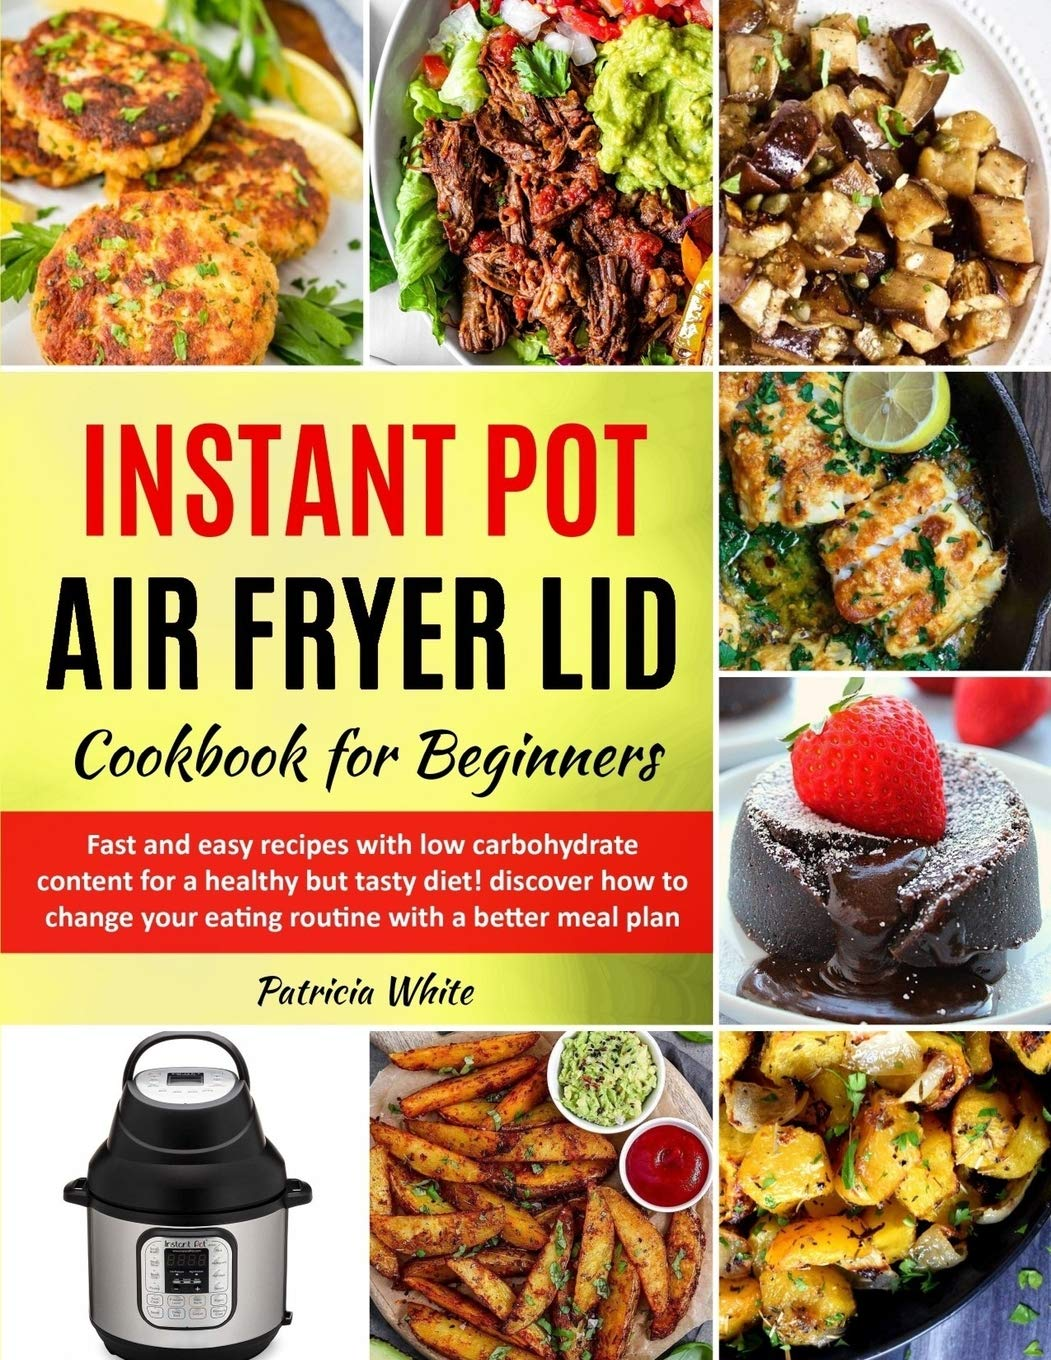 Instant Pot Air Fryer Lid Cookbook for Beginners: fast and easy recipes with low carbohydrate content for a healthy but tasty diet! discover how to ... a better meal plan